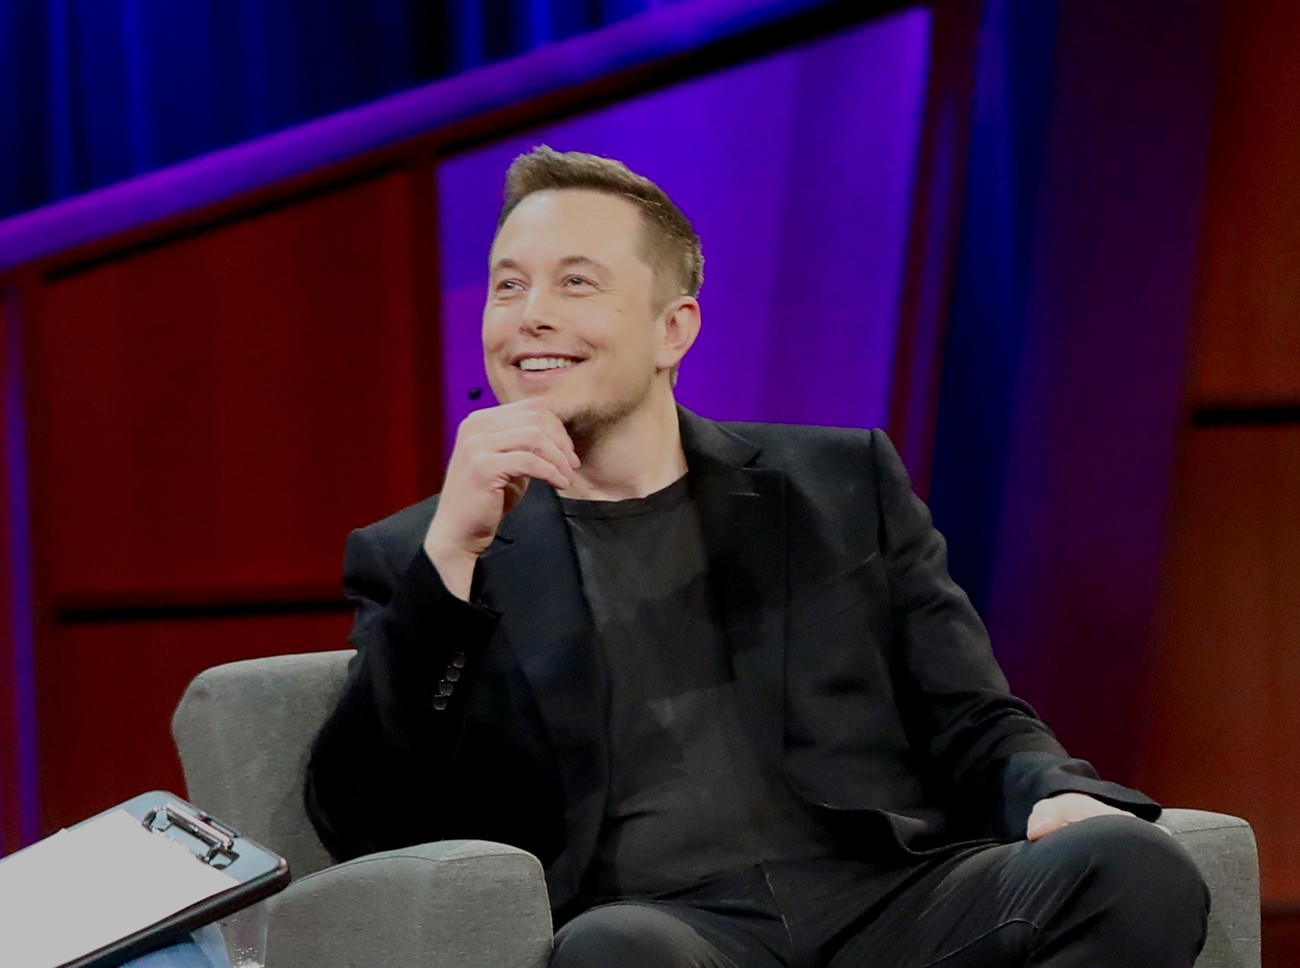 Exhibit 8.4 Elon Musk and his electric car company, Tesla, issued high-yield junk bonds in August 2017 and raised nearly $1.8 billion to help finance the production and launch of Tesla's new Model 3. Tesla has spent billions of dollars in its efforts to develop electric cars in the past few years. What are the risks and rewards of buying junk bonds? (Credit: Steve Jurvetson/ flickr/ Attribution 2.0 Generic (CC BY 2.0))